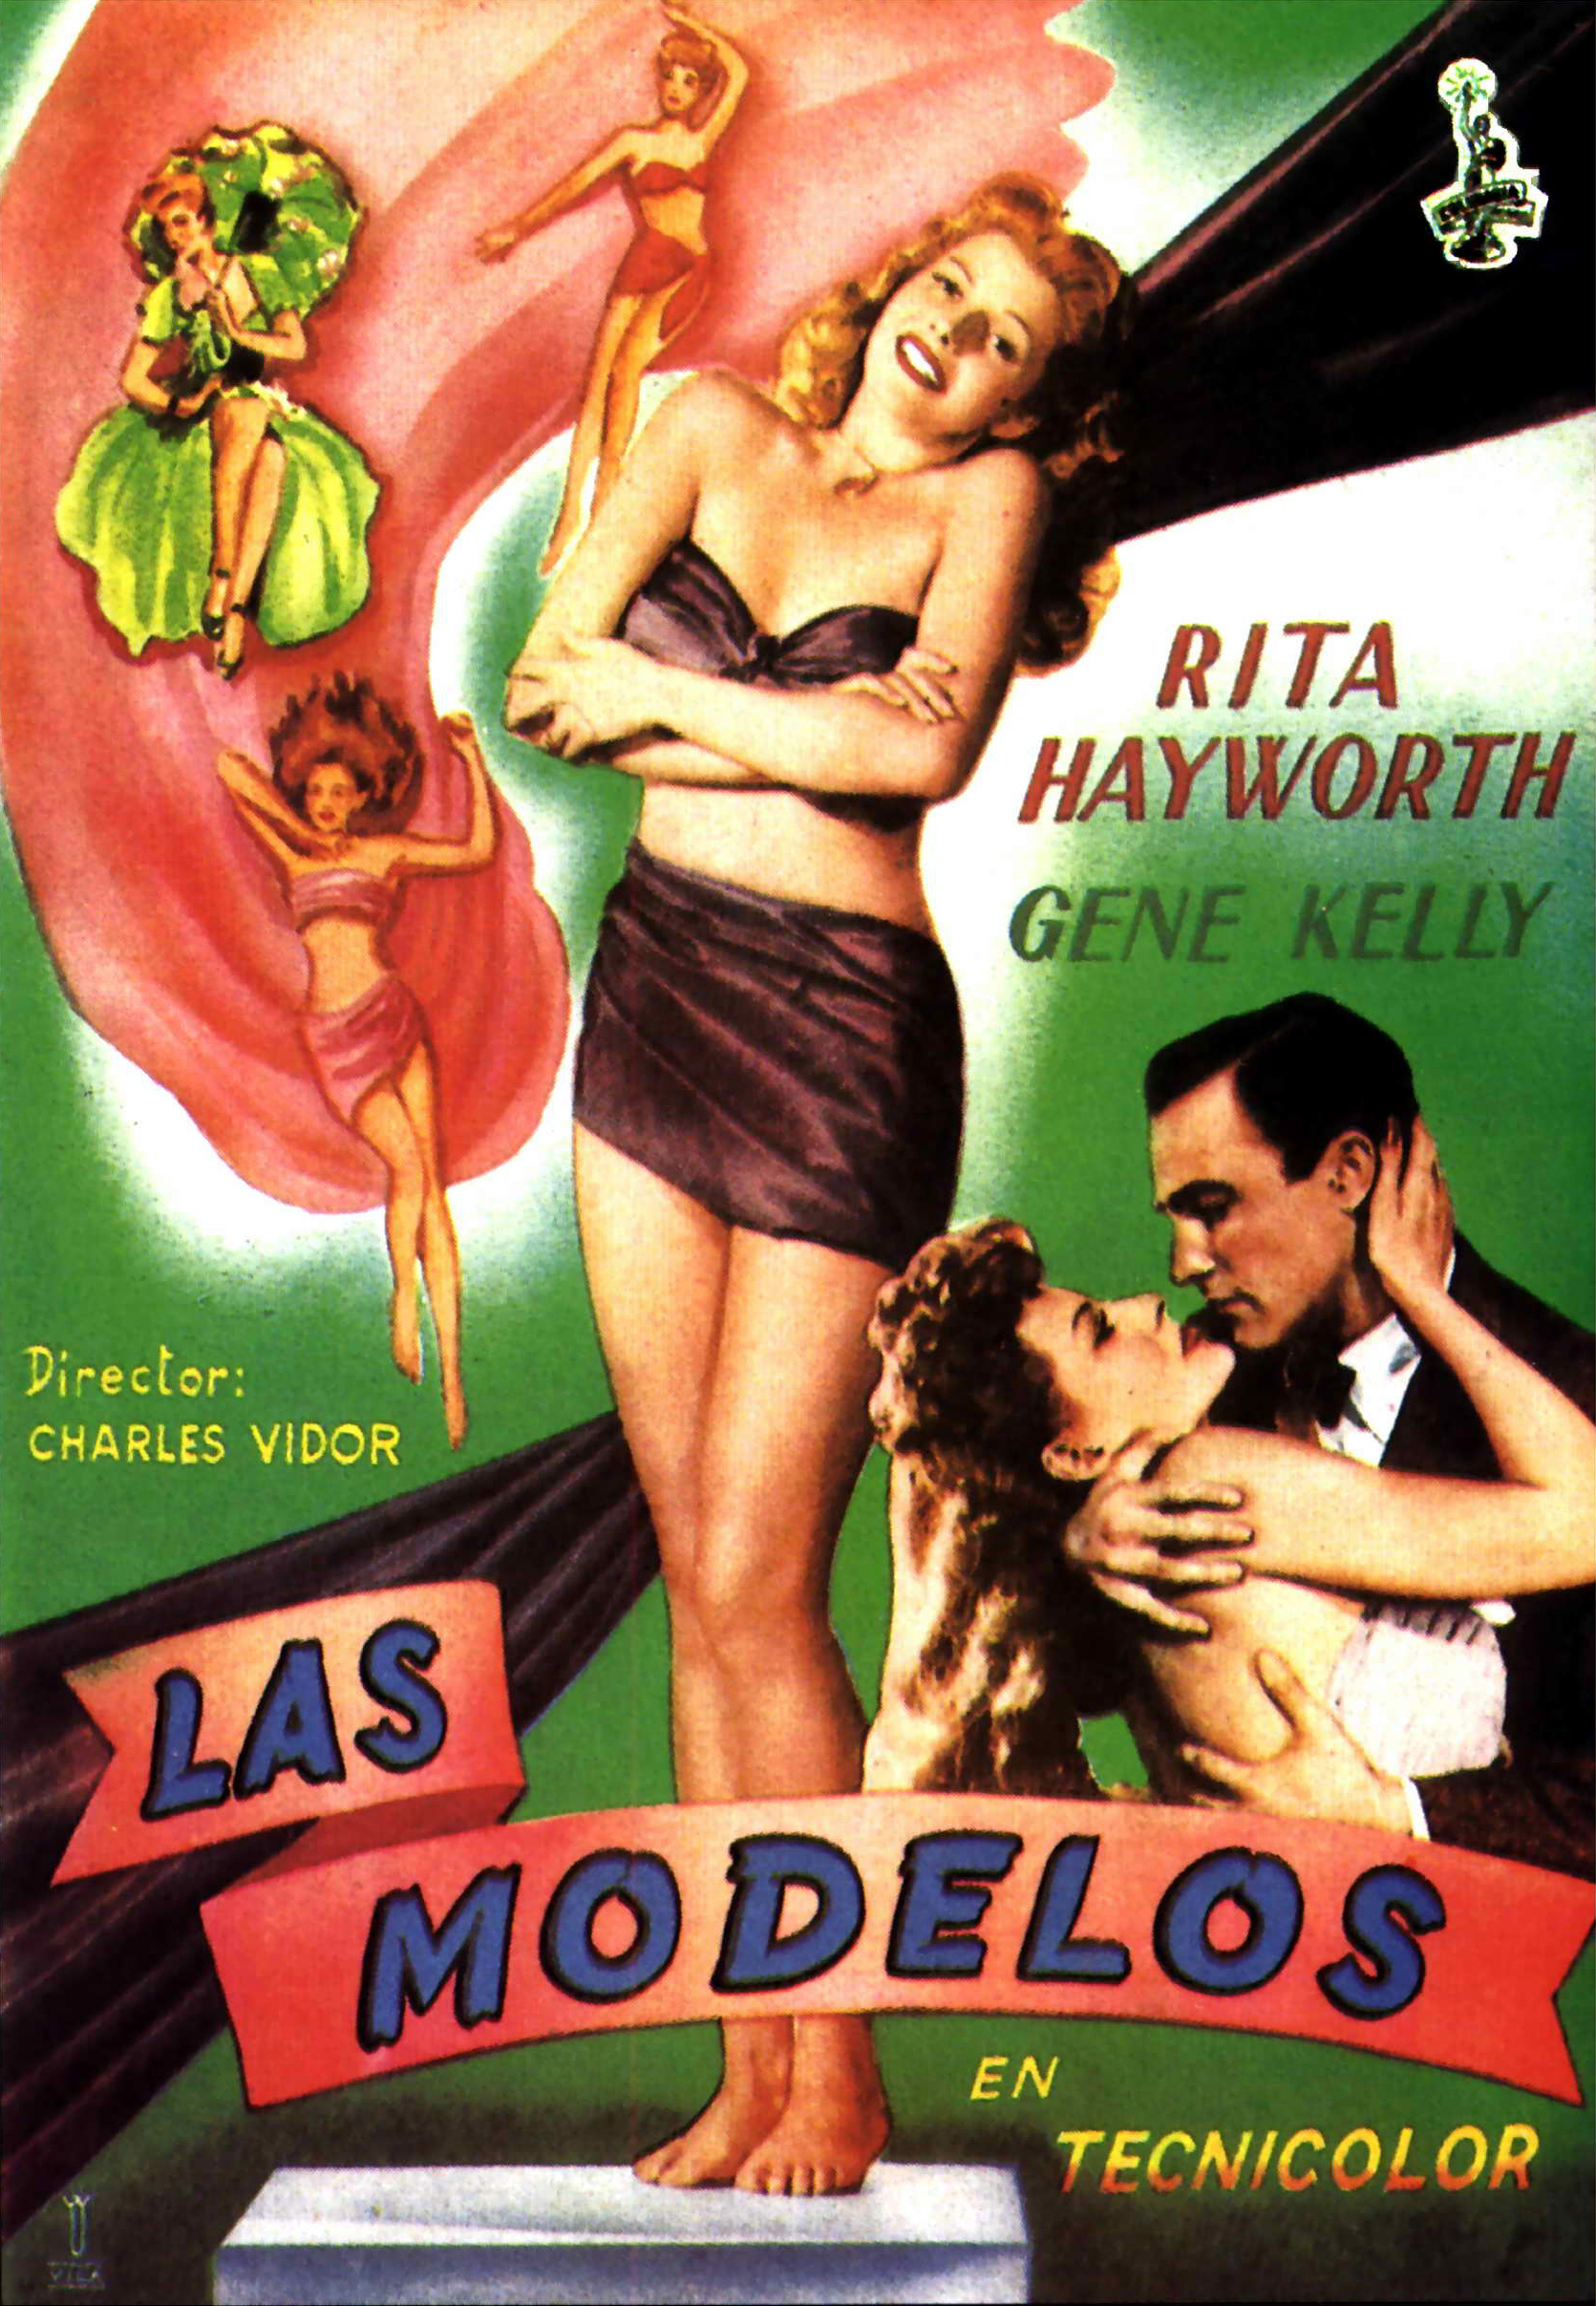 Rita hayworth porn videos download hentia photos